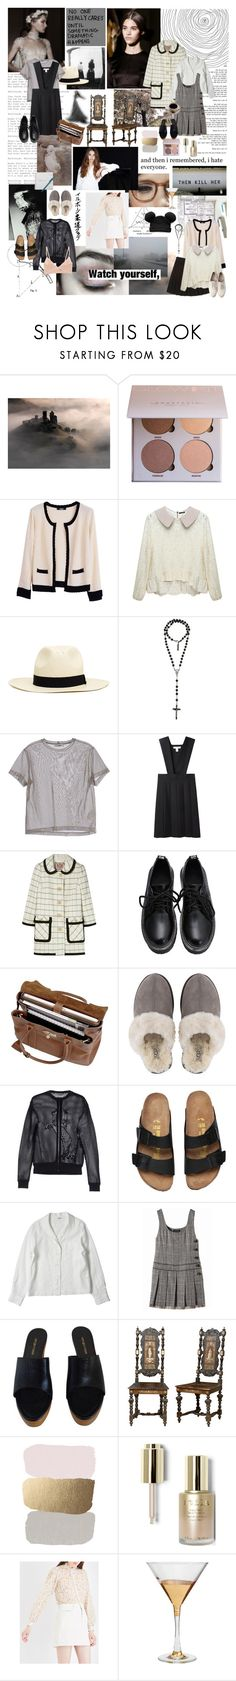 """""""are you going to clean that up?"""" by young-grasshopper ❤ liked on Polyvore featuring Chicnova Fashion, Maison Margiela, 2b bebe, Dolce&Gabbana, Jil Sander, Comme des Garçons SHIRT, Mulberry, UGG, STELLA McCARTNEY and Jill Stuart"""